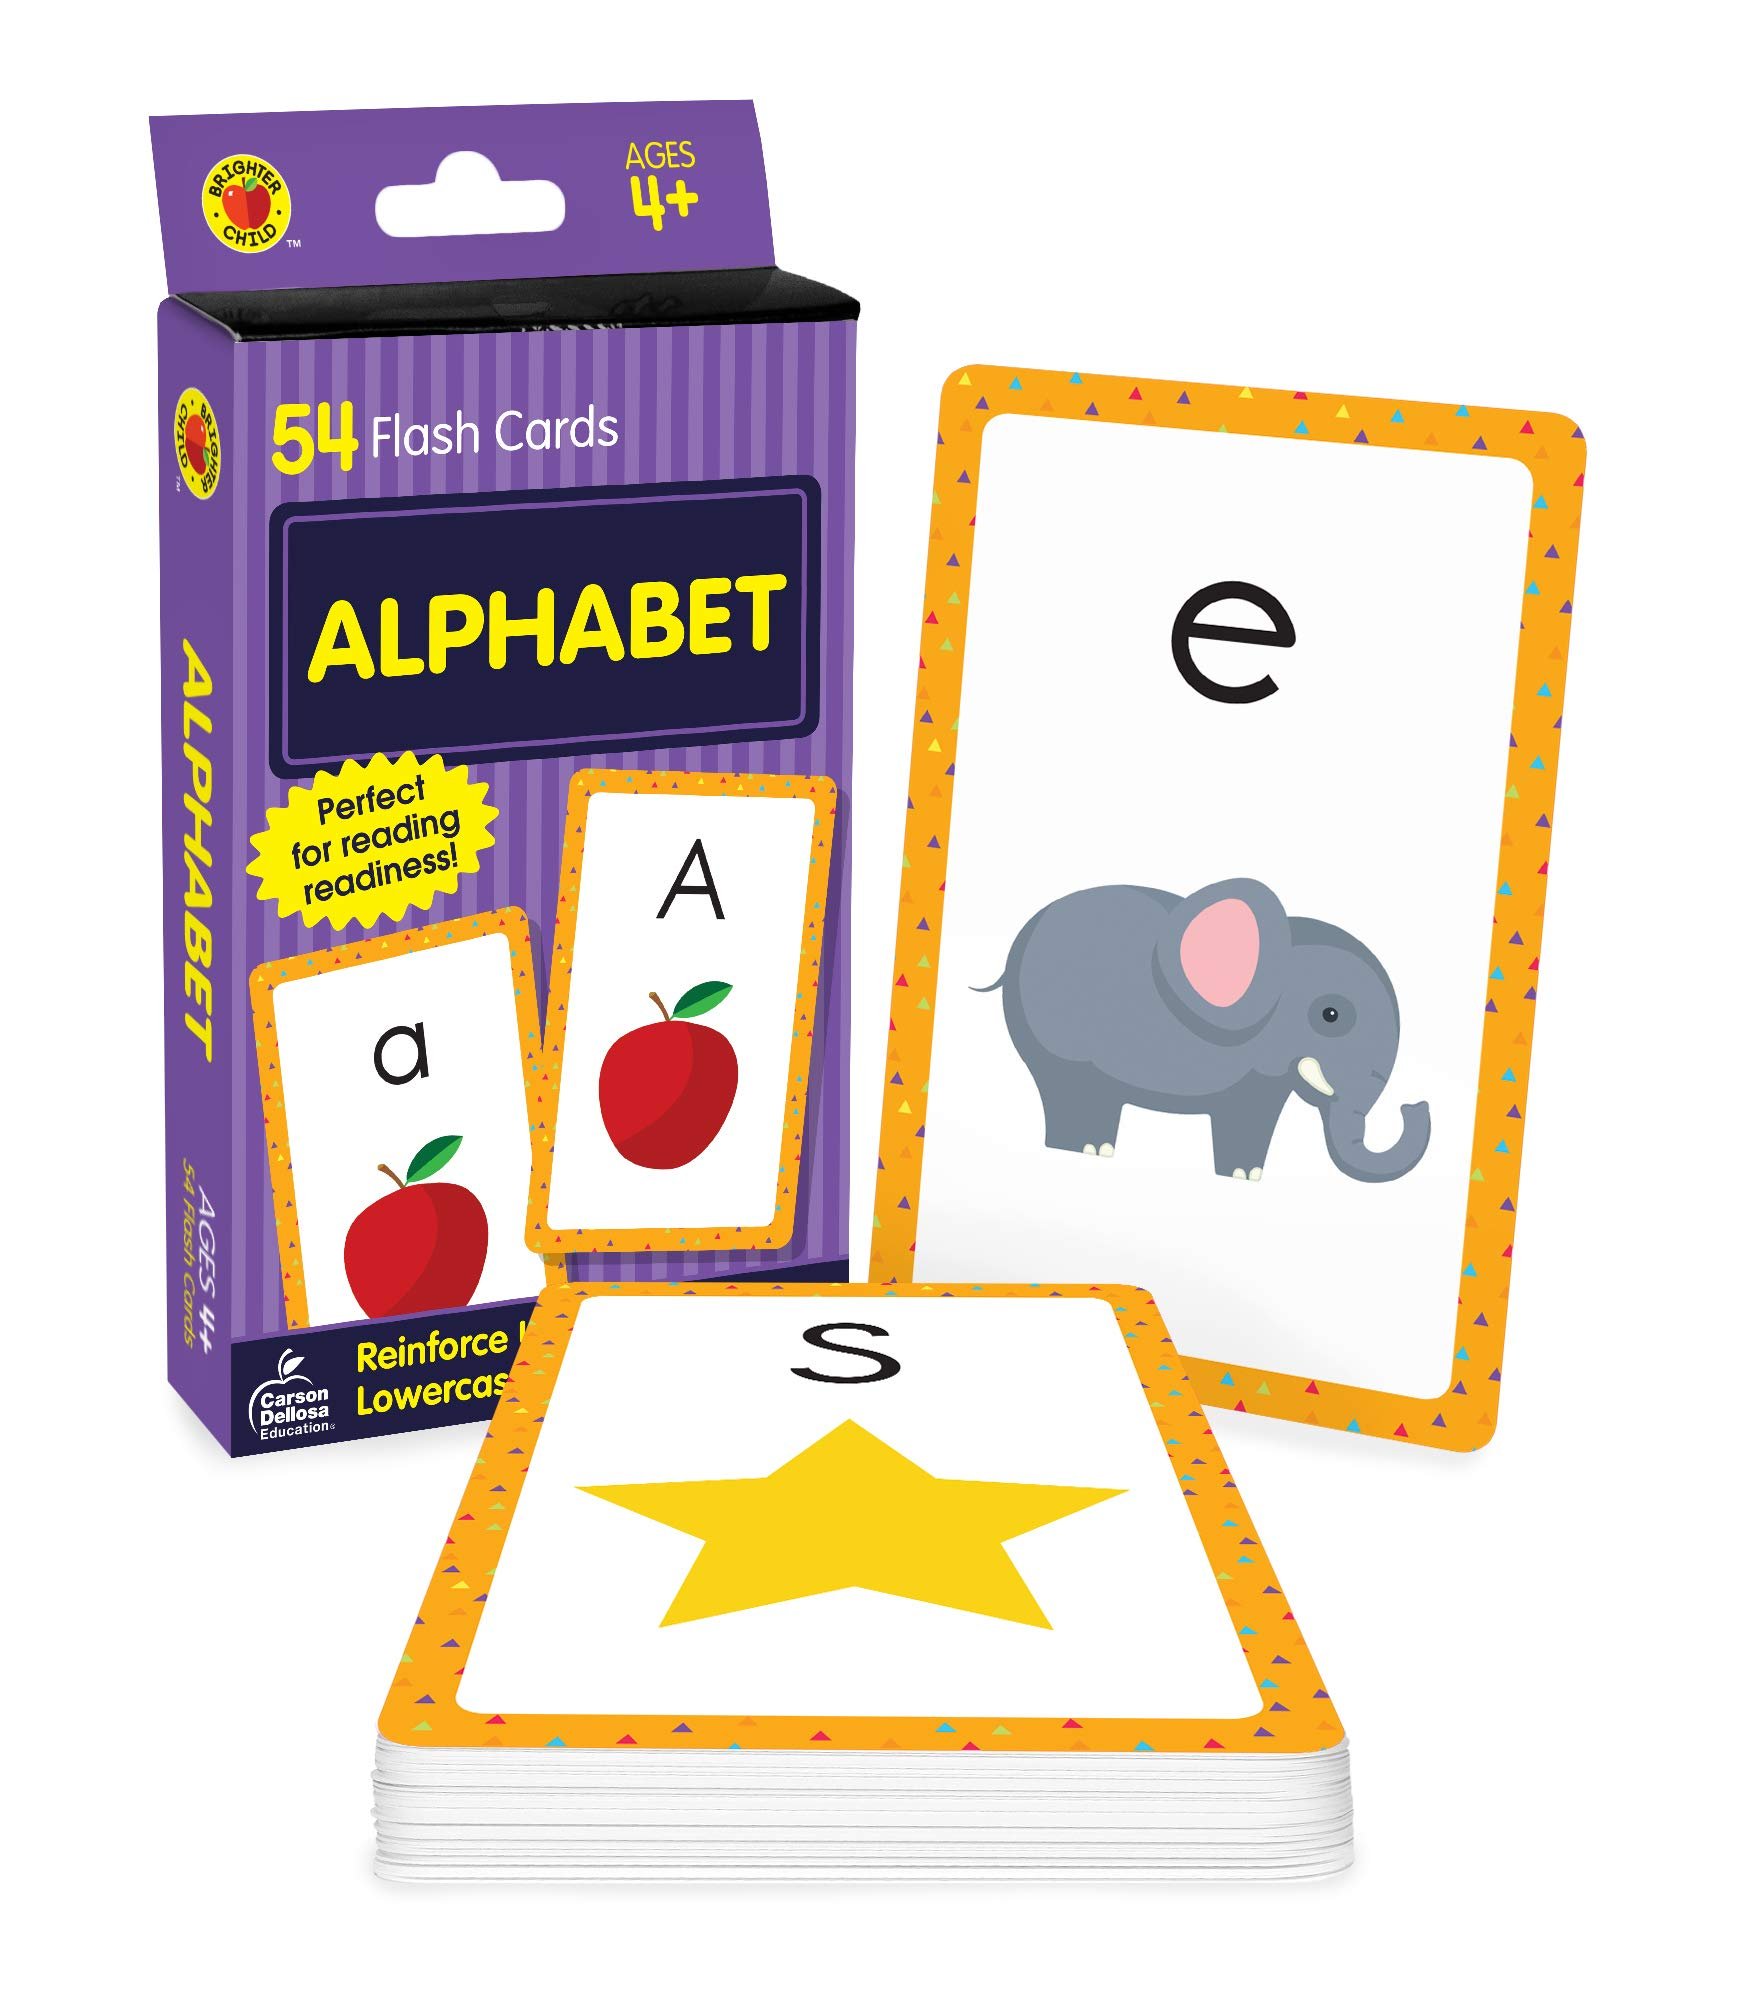 Carson Dellosa Alphabet Flash Cards—Double-Sided, Uppercase and Lowercase Letter and Sound Recognition With Illustrations, Early Reading Comprehension Practice Set (54 laptop)